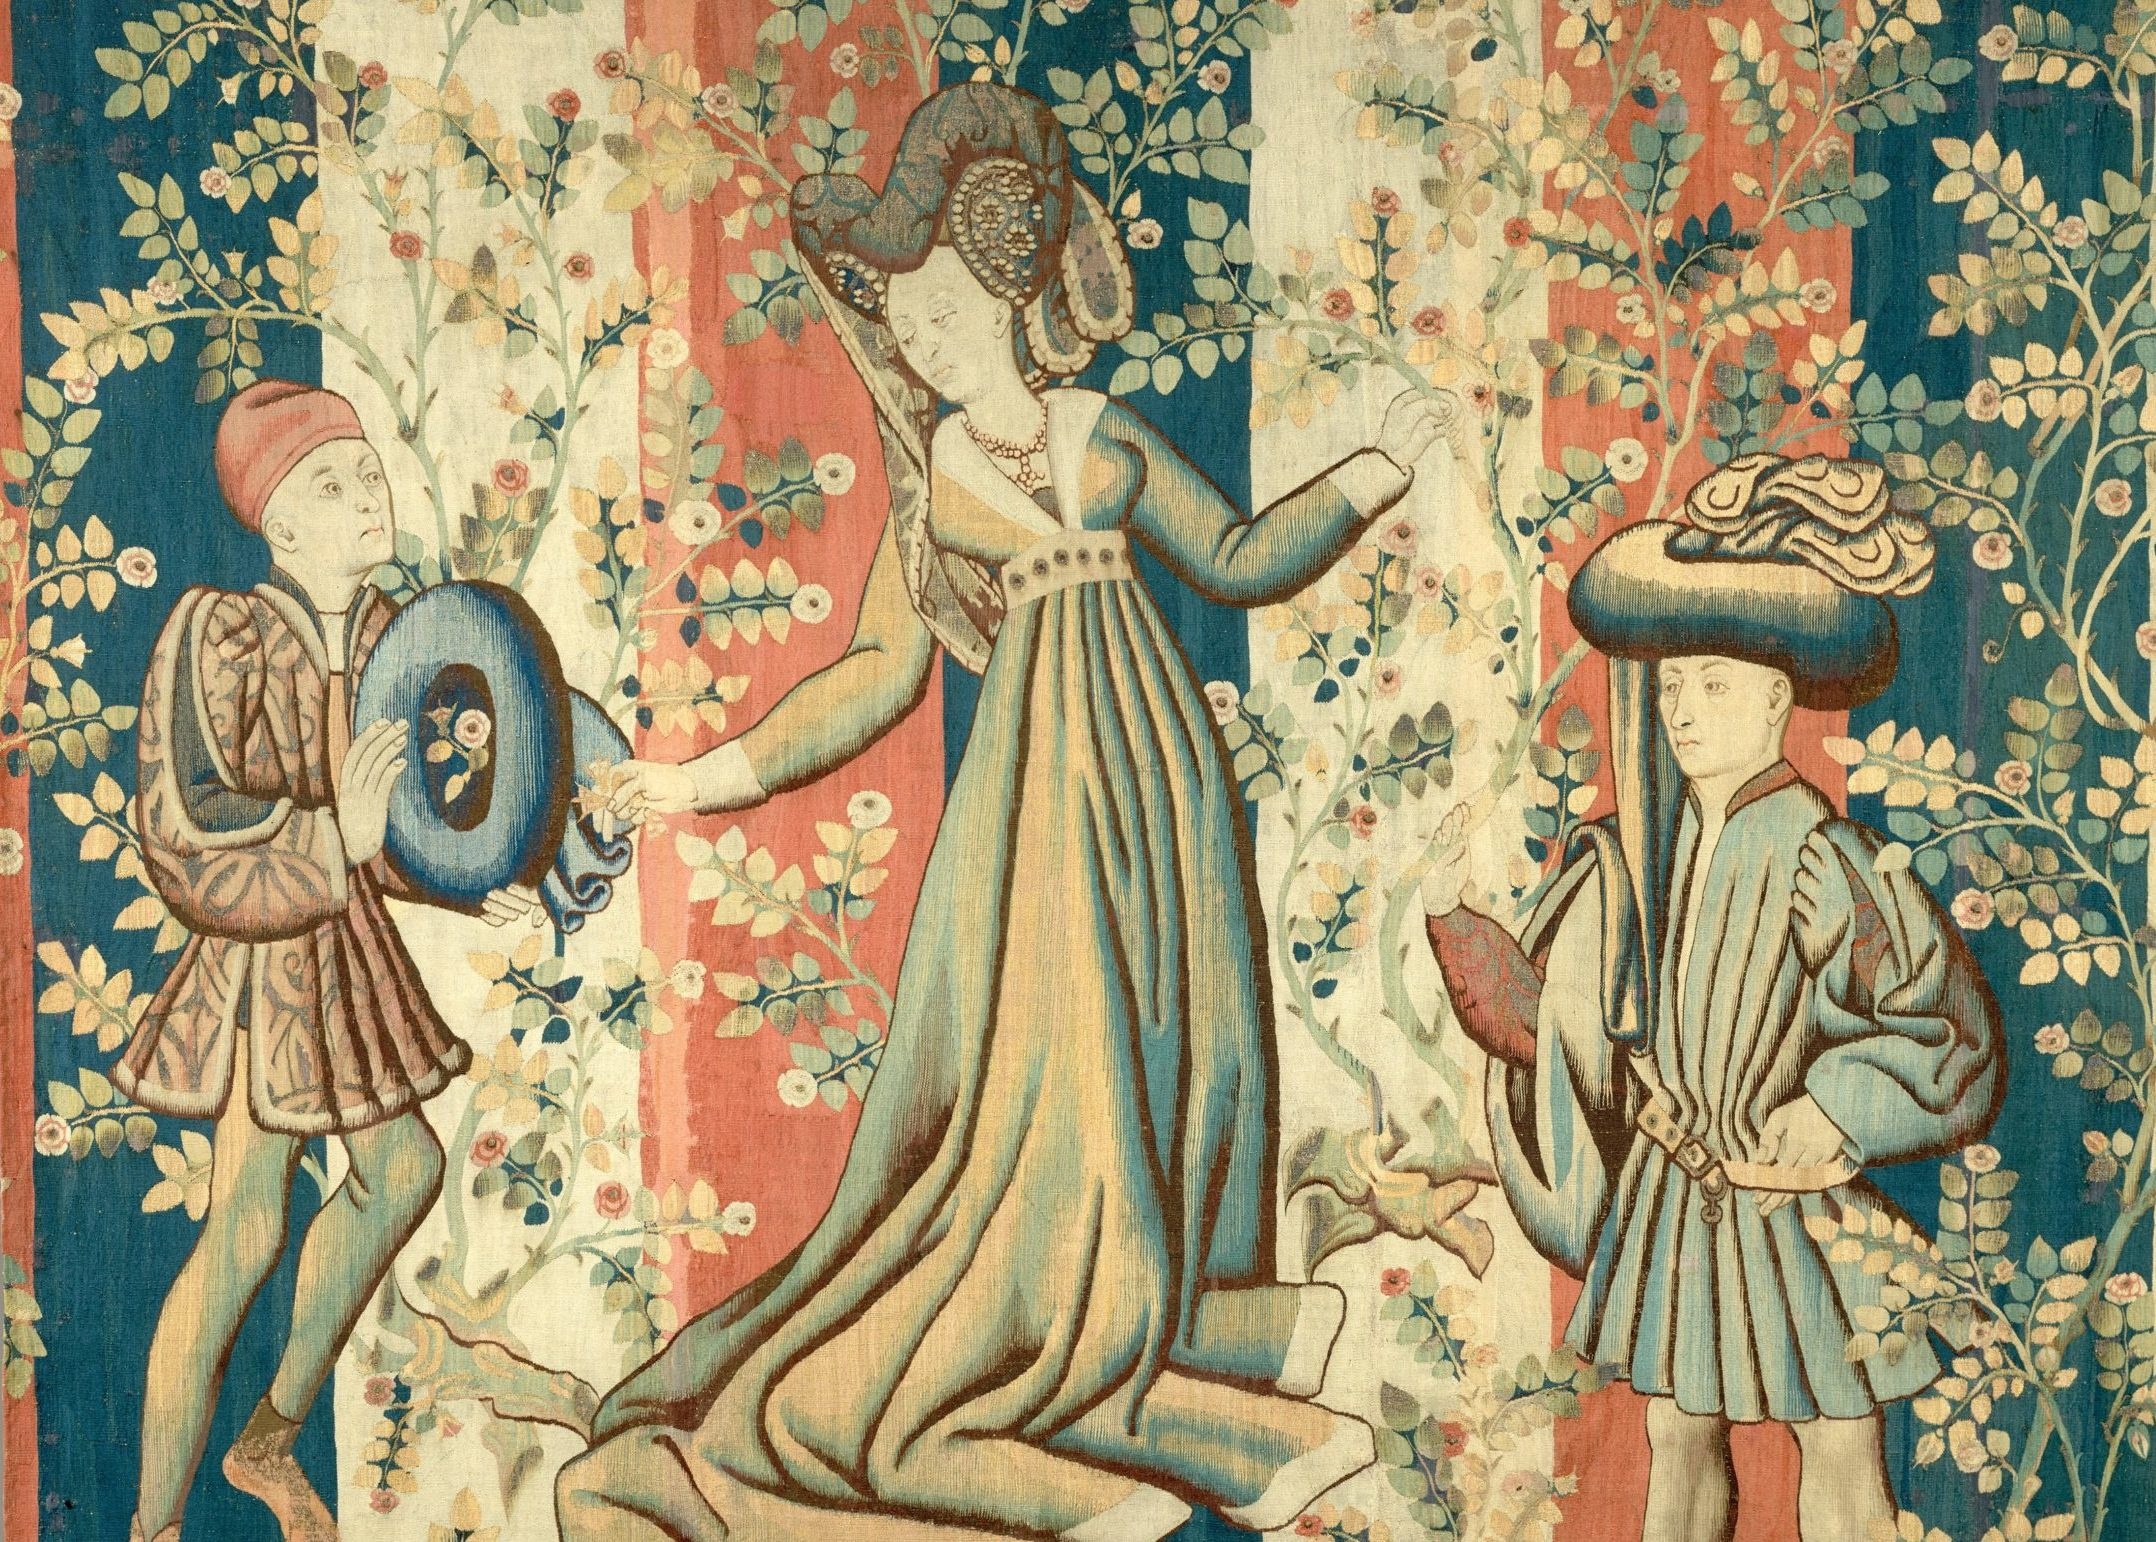 Courtiers in a Rose Garden: A Lady and Two Gentlemen, Tapestry, ca. 1440–50, South Netherlandish